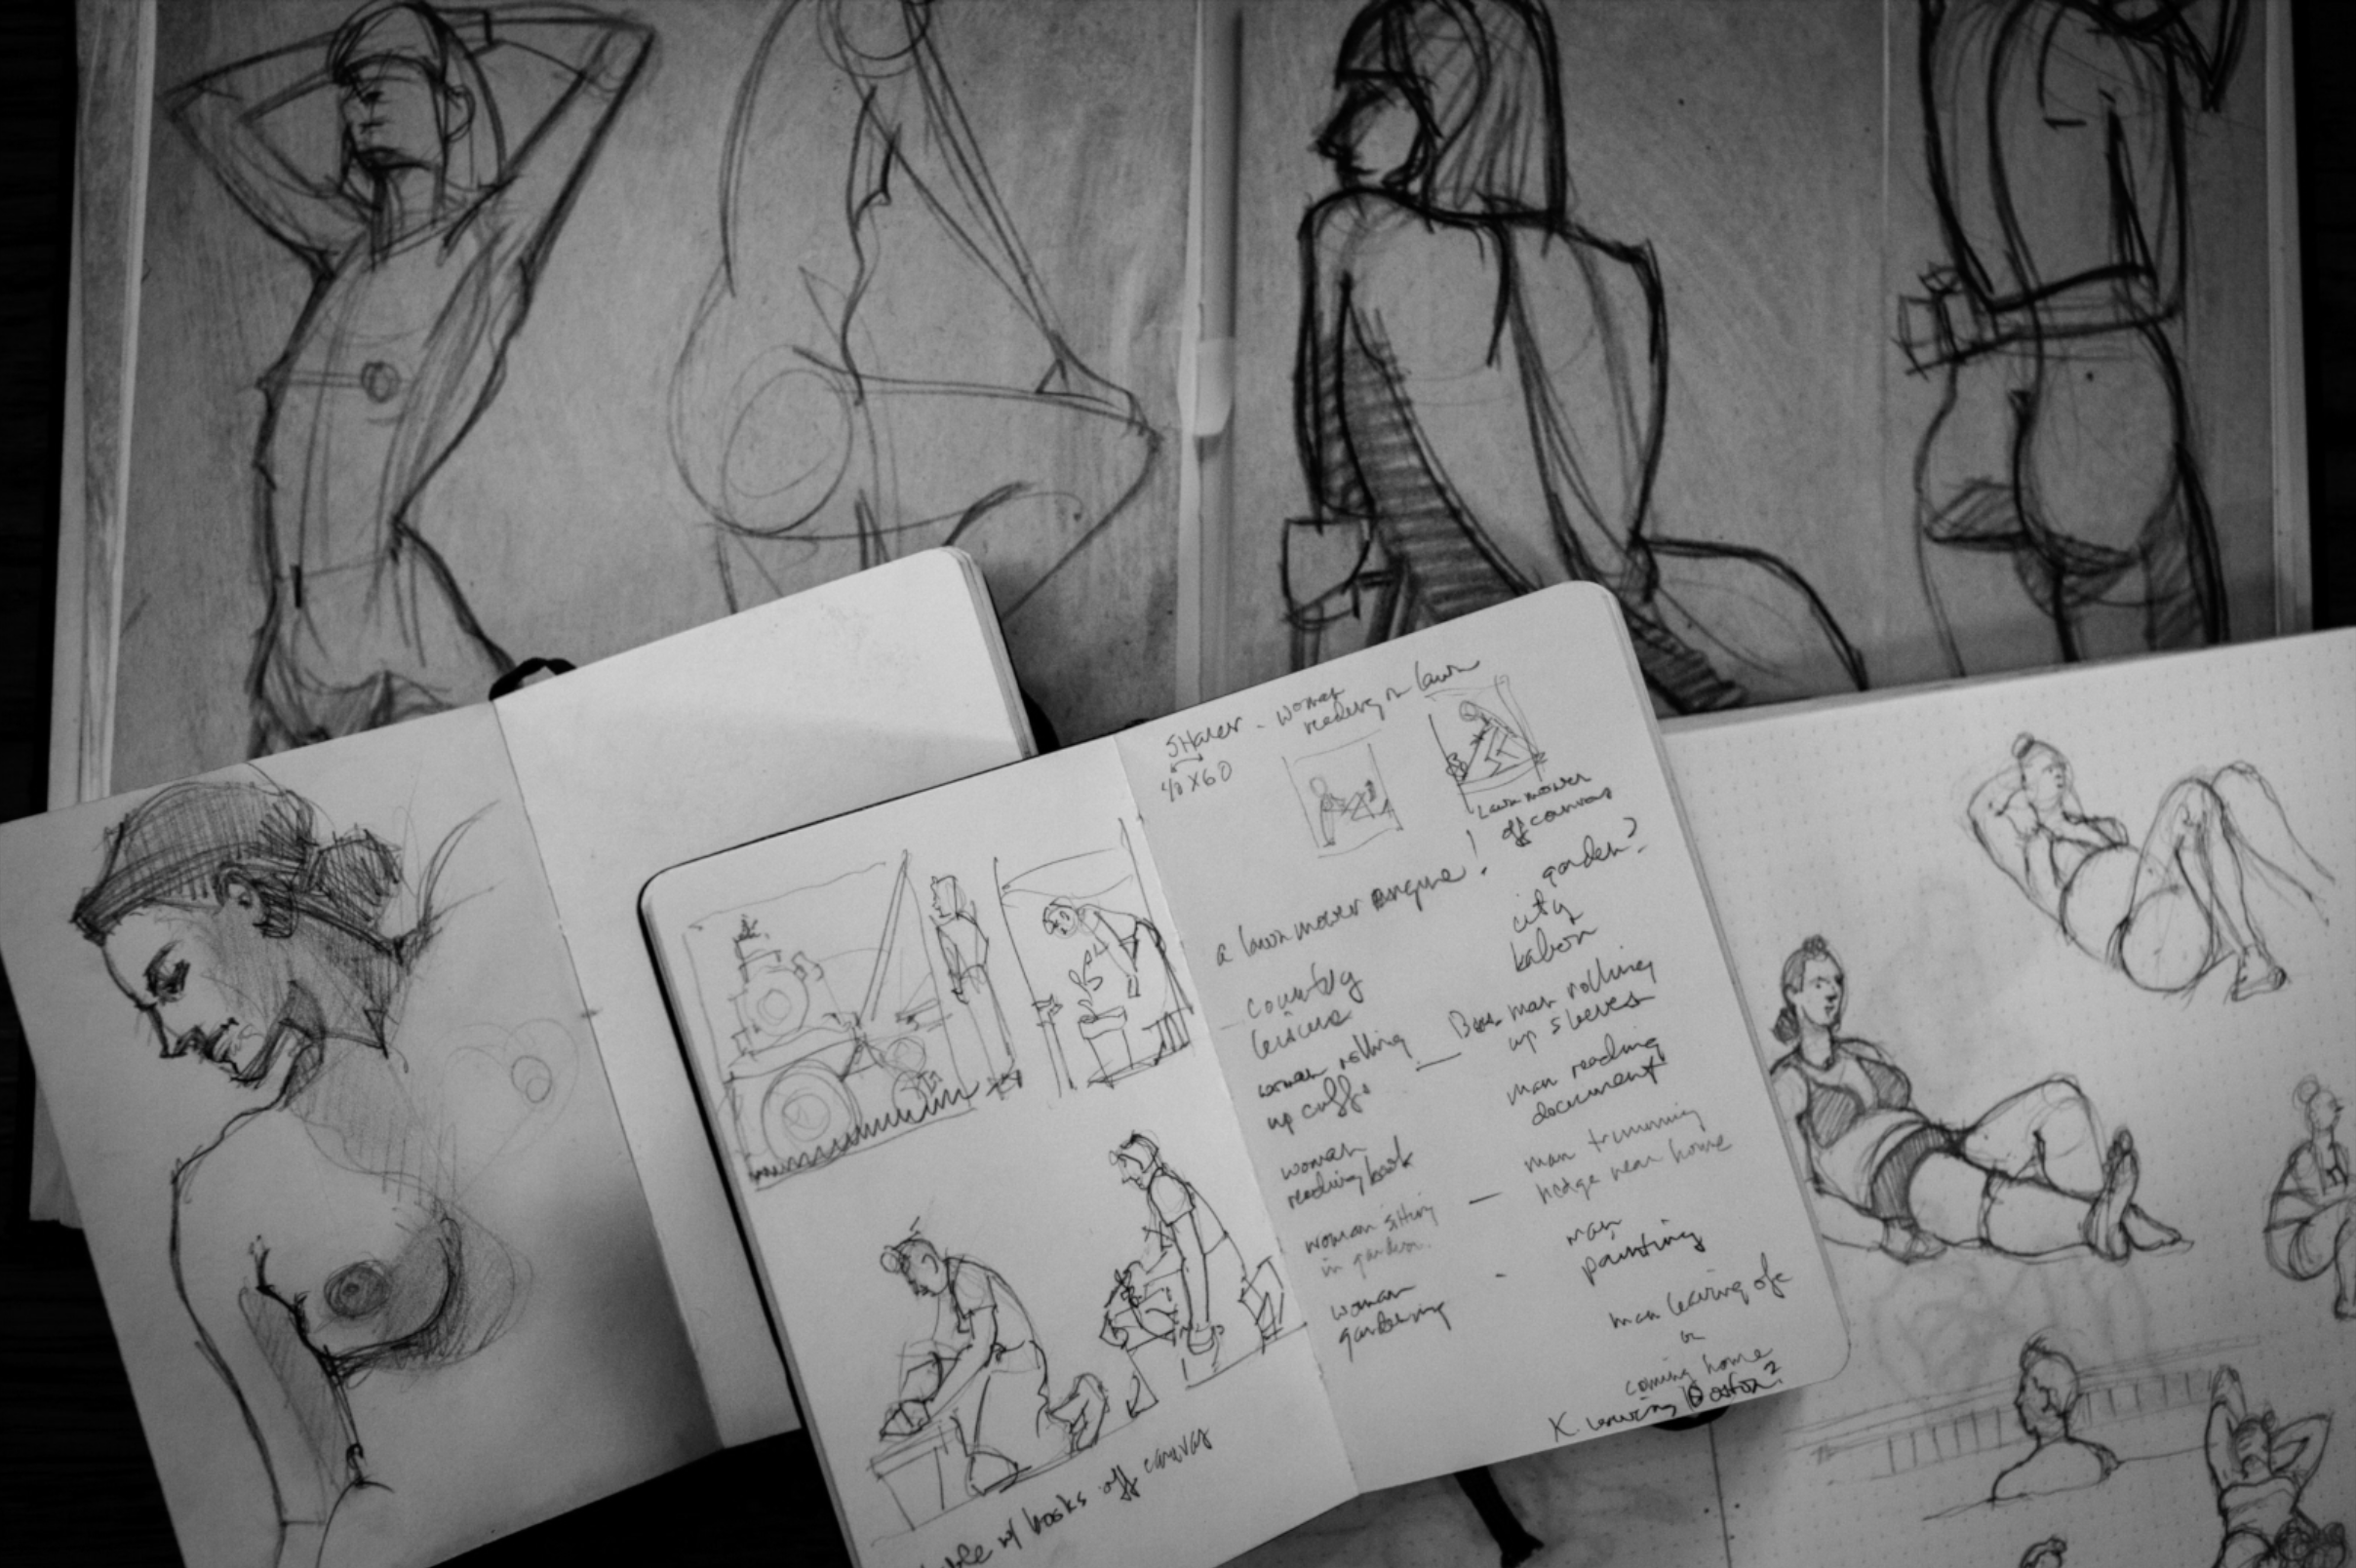 Kenton has so many books of sketches - he sketches all the time, even still takes drawing classes to continue to hone his skills and learn something new.